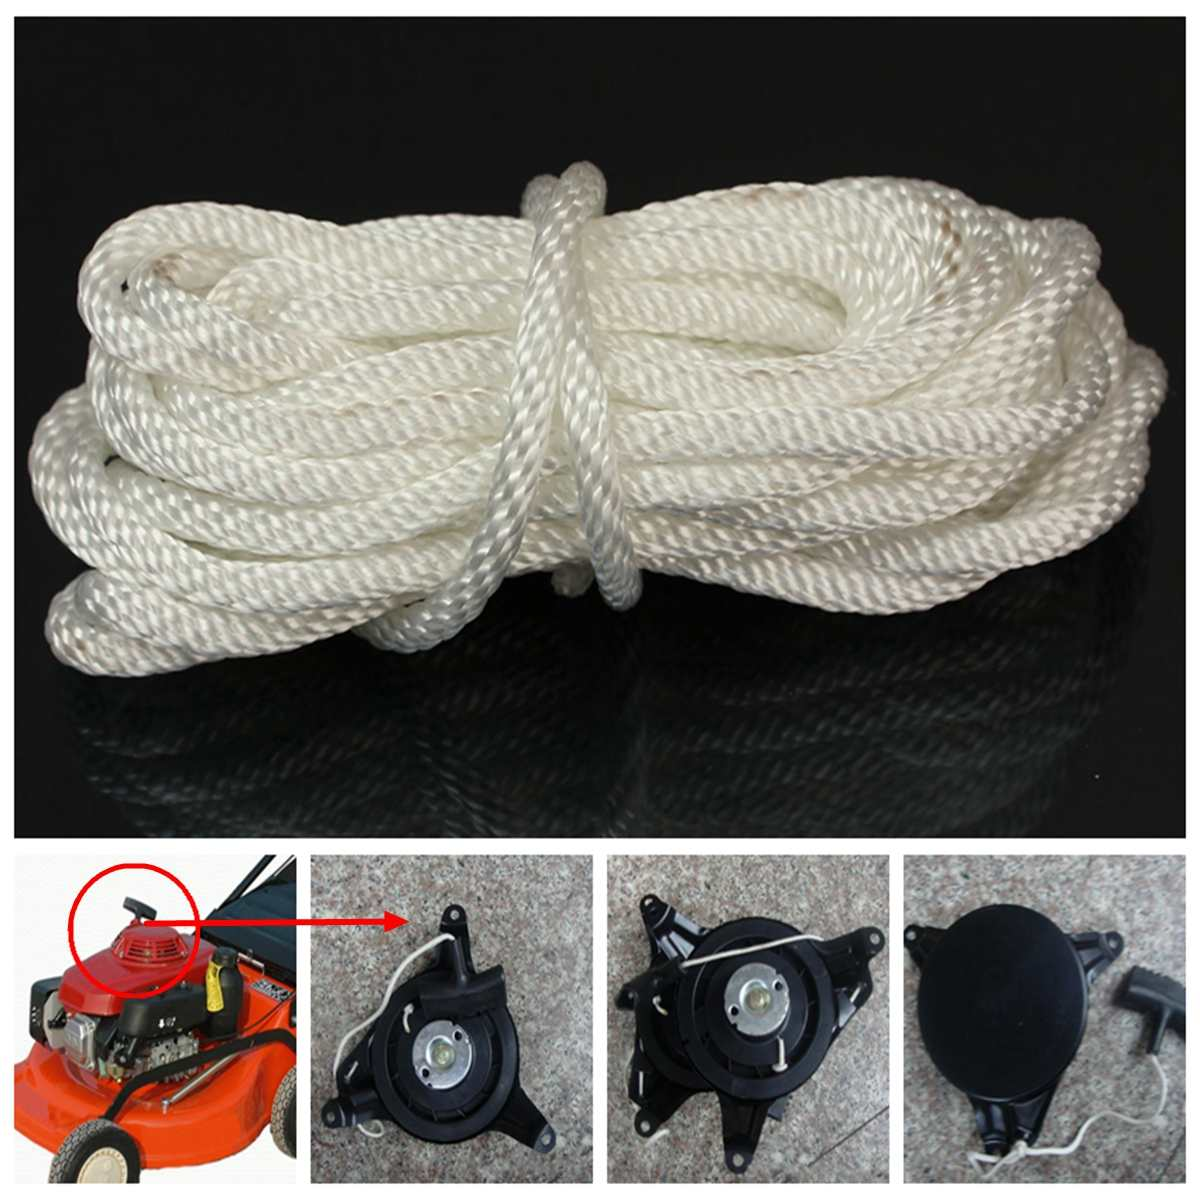 1 X 4mm 5m Nylon White Pull Starter Recoil Start Cord Rope For Most Lawnmower Towing Ropes Aliexpress